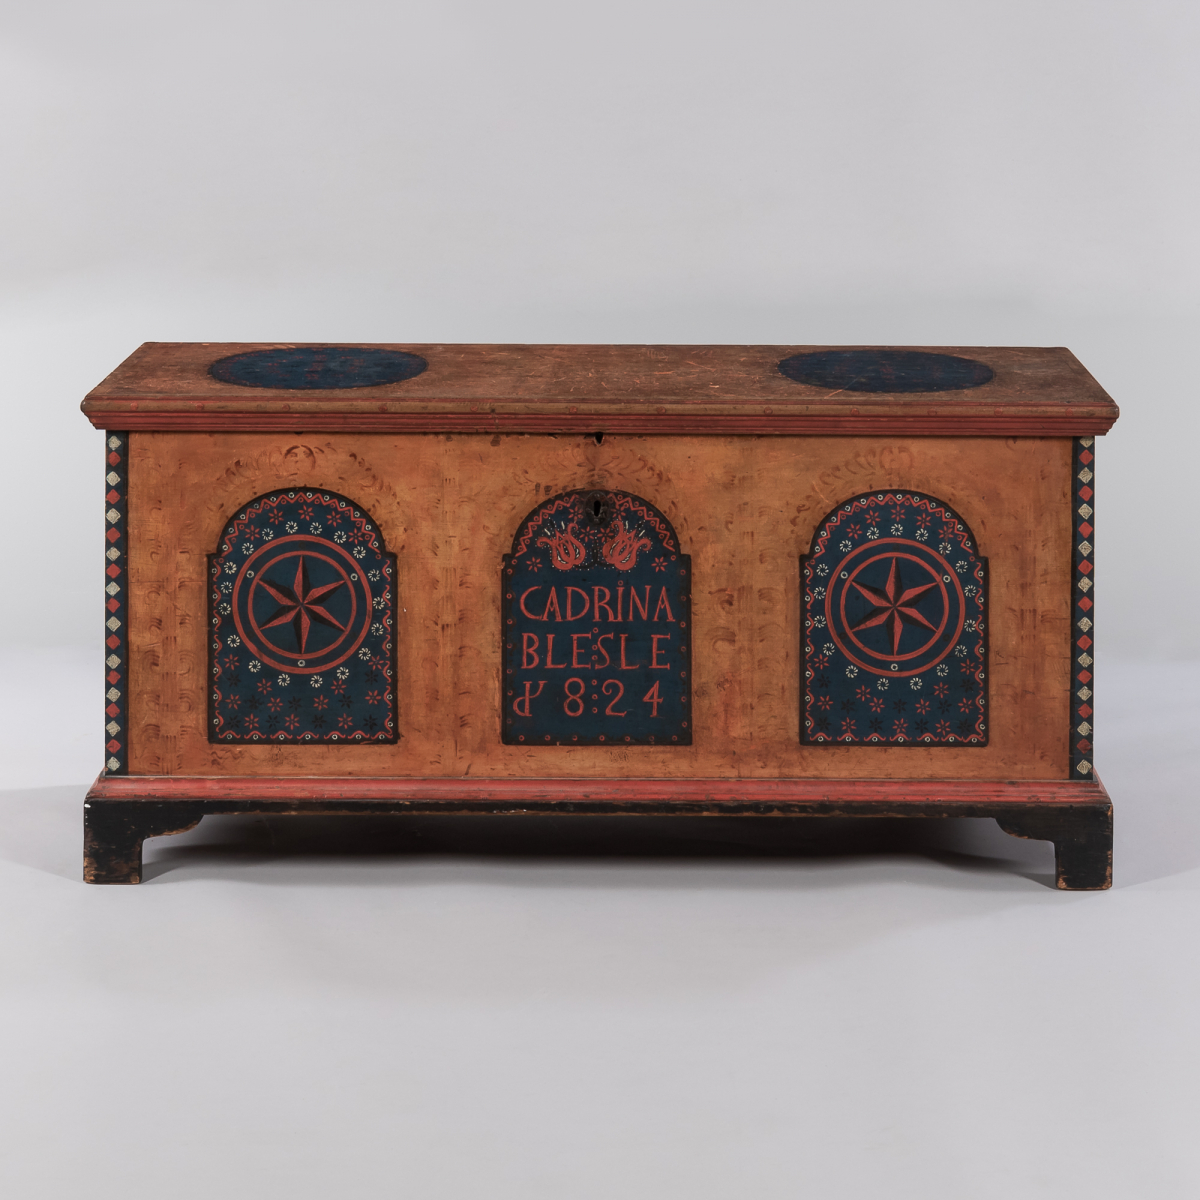 "Paint-decorated Dower Chest ""Cadrina Blesle/1824,"" Dauphin County, Pennsylvania, 1824"